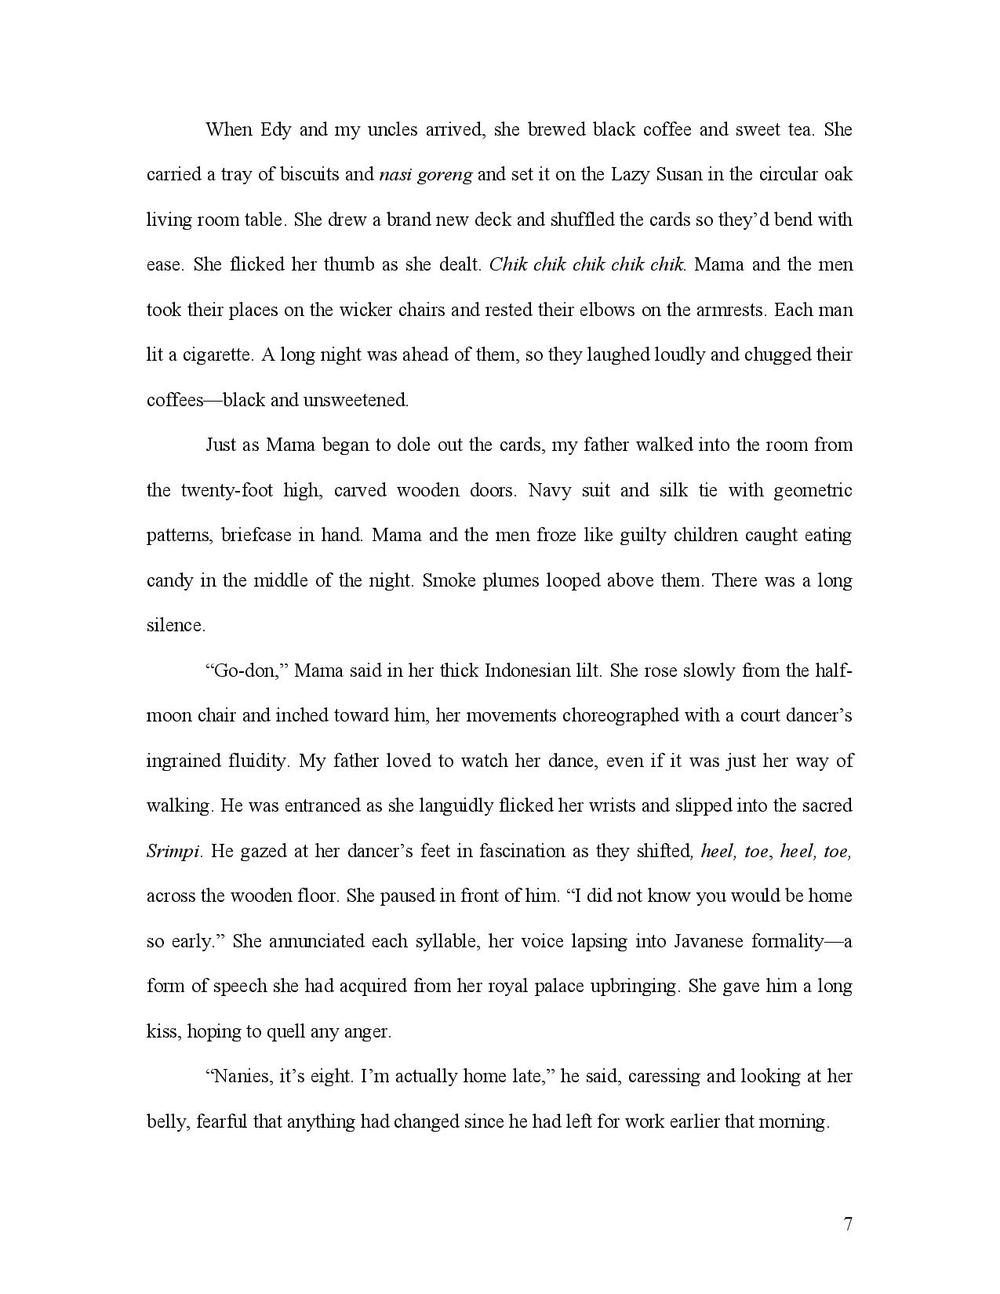 In The Cards_edit_excerpt-page-007.jpg